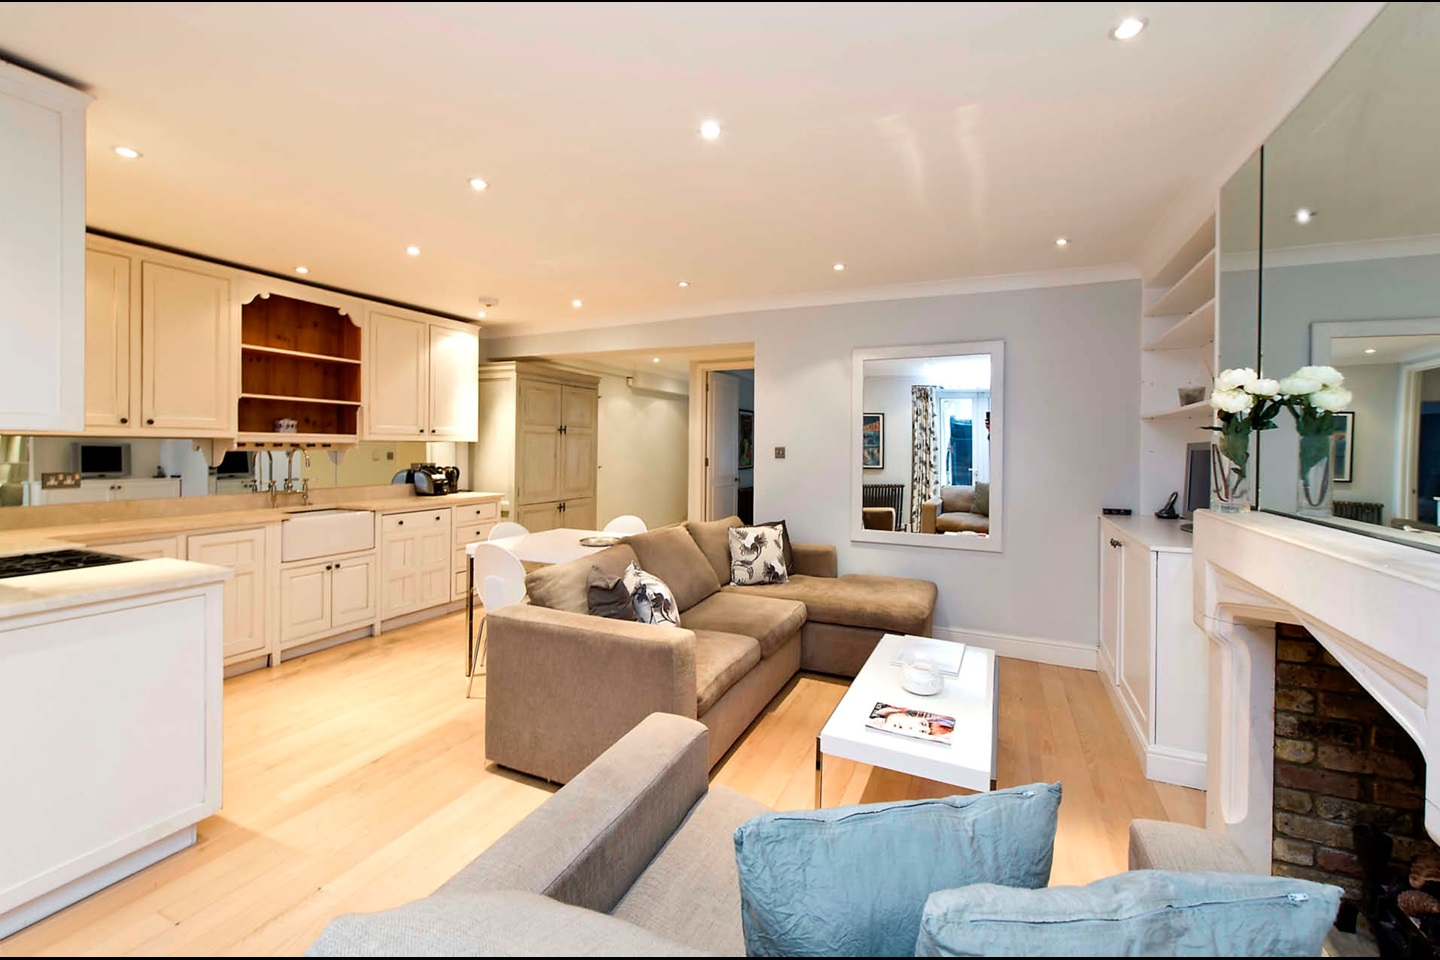 London - 2 Bed Flat, Notting Hill, W11 - To Rent Now for ...